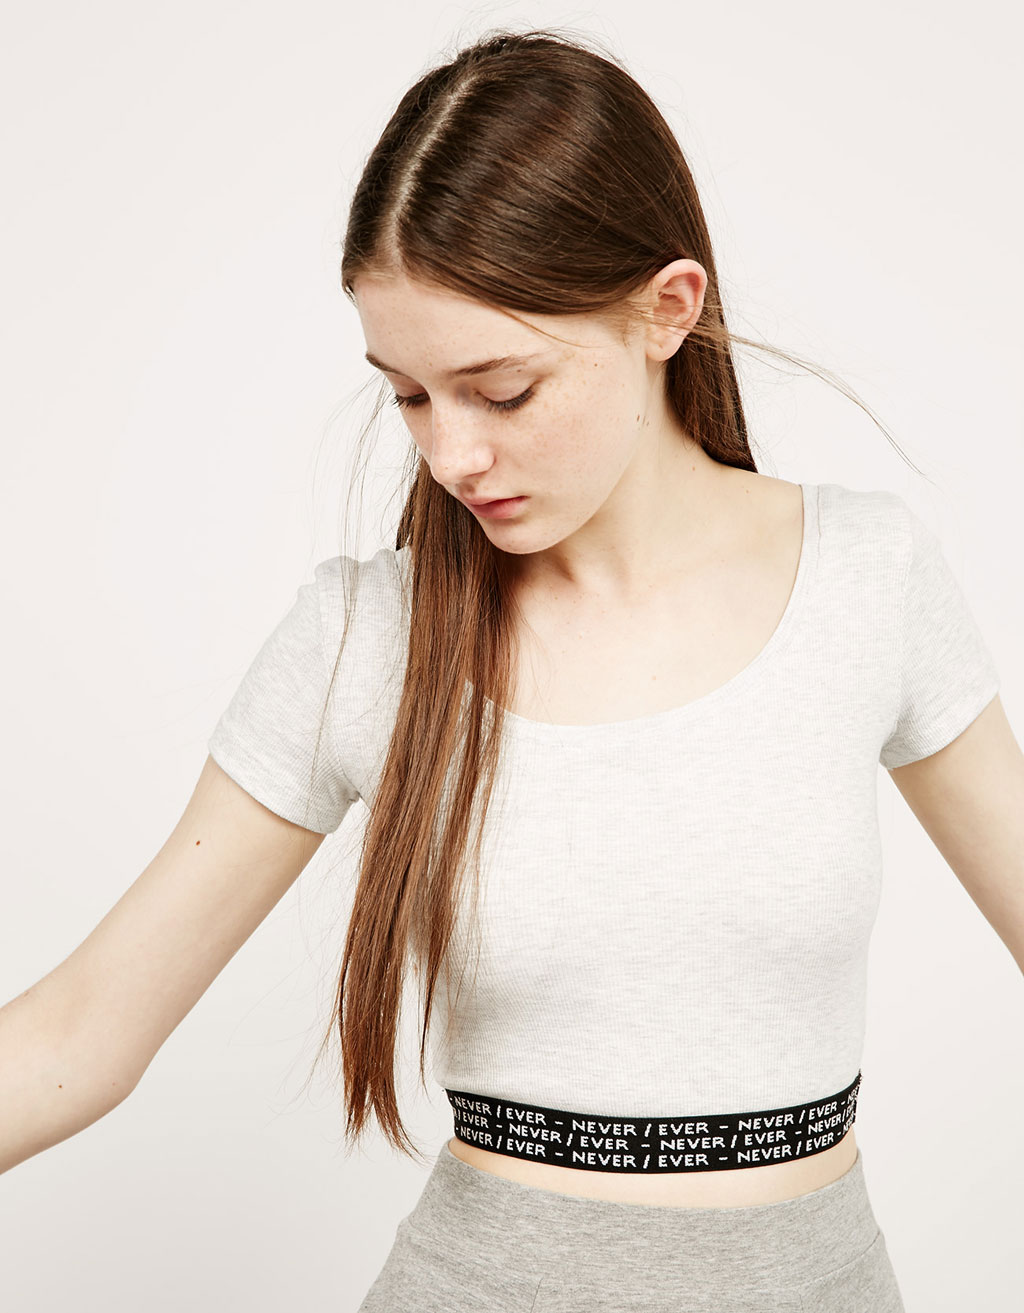 BSK cropped elastic band top with text